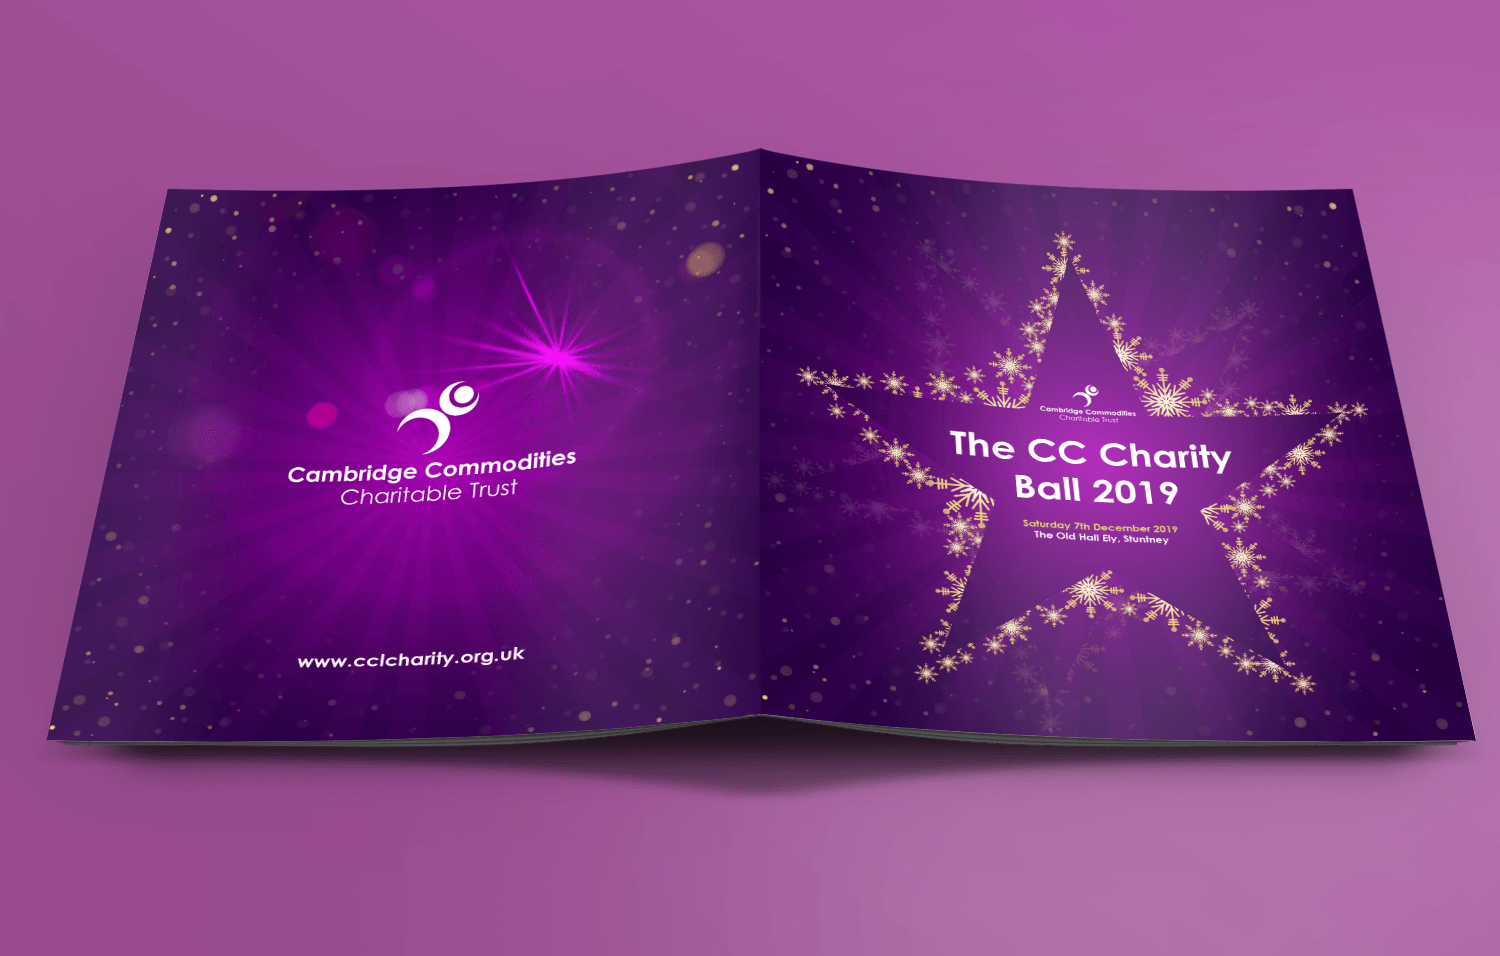 Cambridge Commodities Charity ball brochure